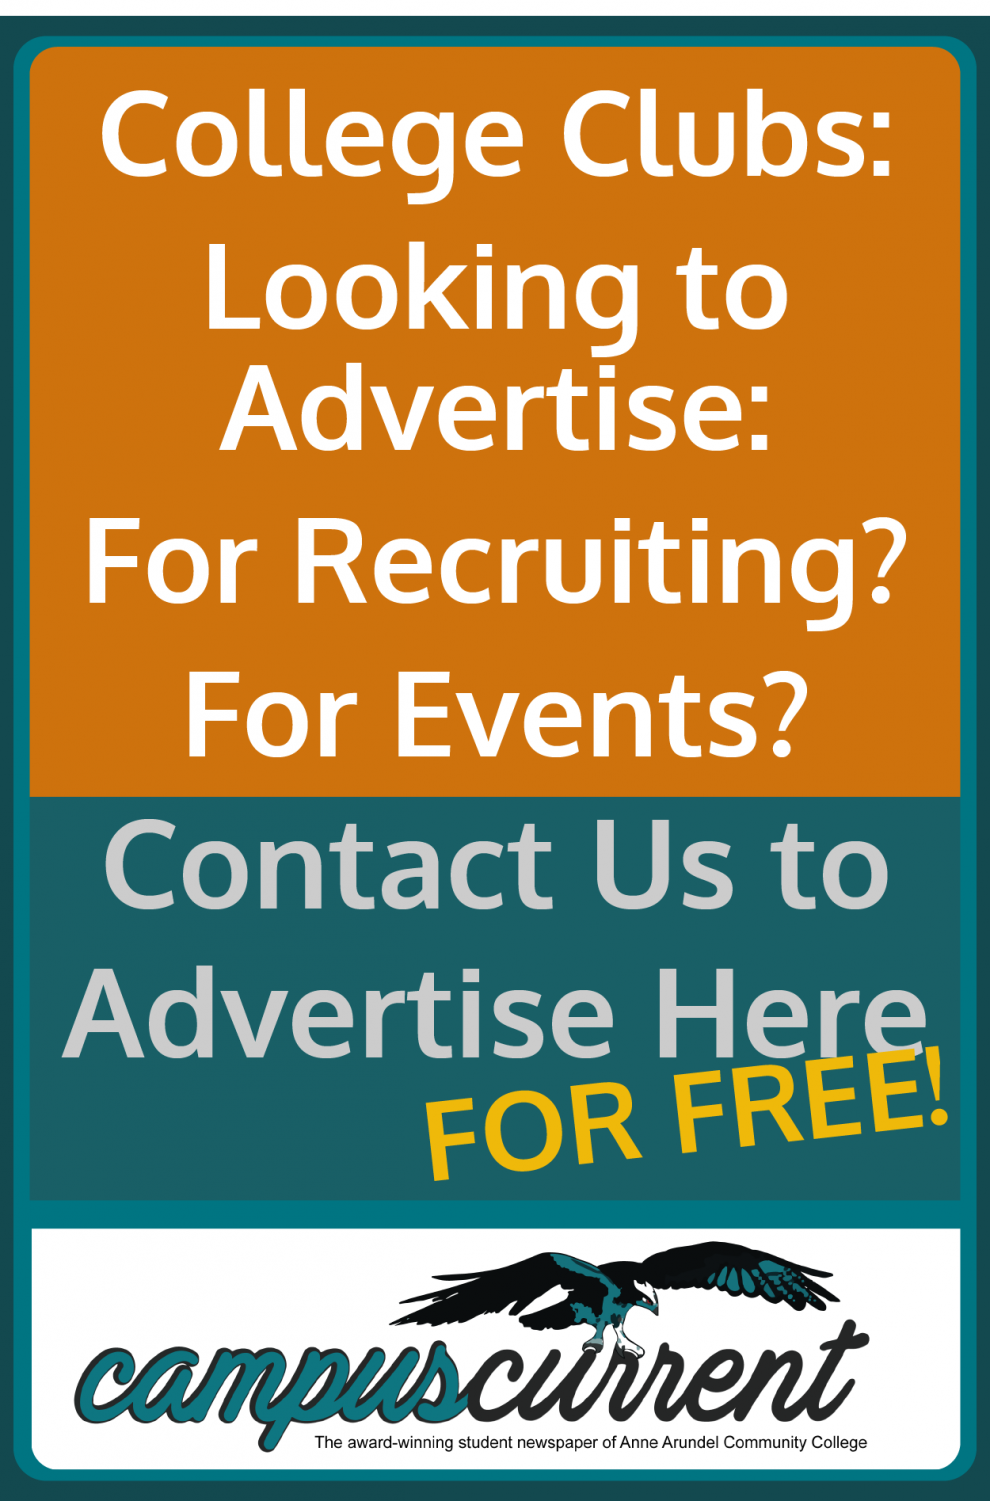 College Clubs: Looking to Advertise: For Recruiting? For Events? Contact Us to Advertise Here FOR FREE!